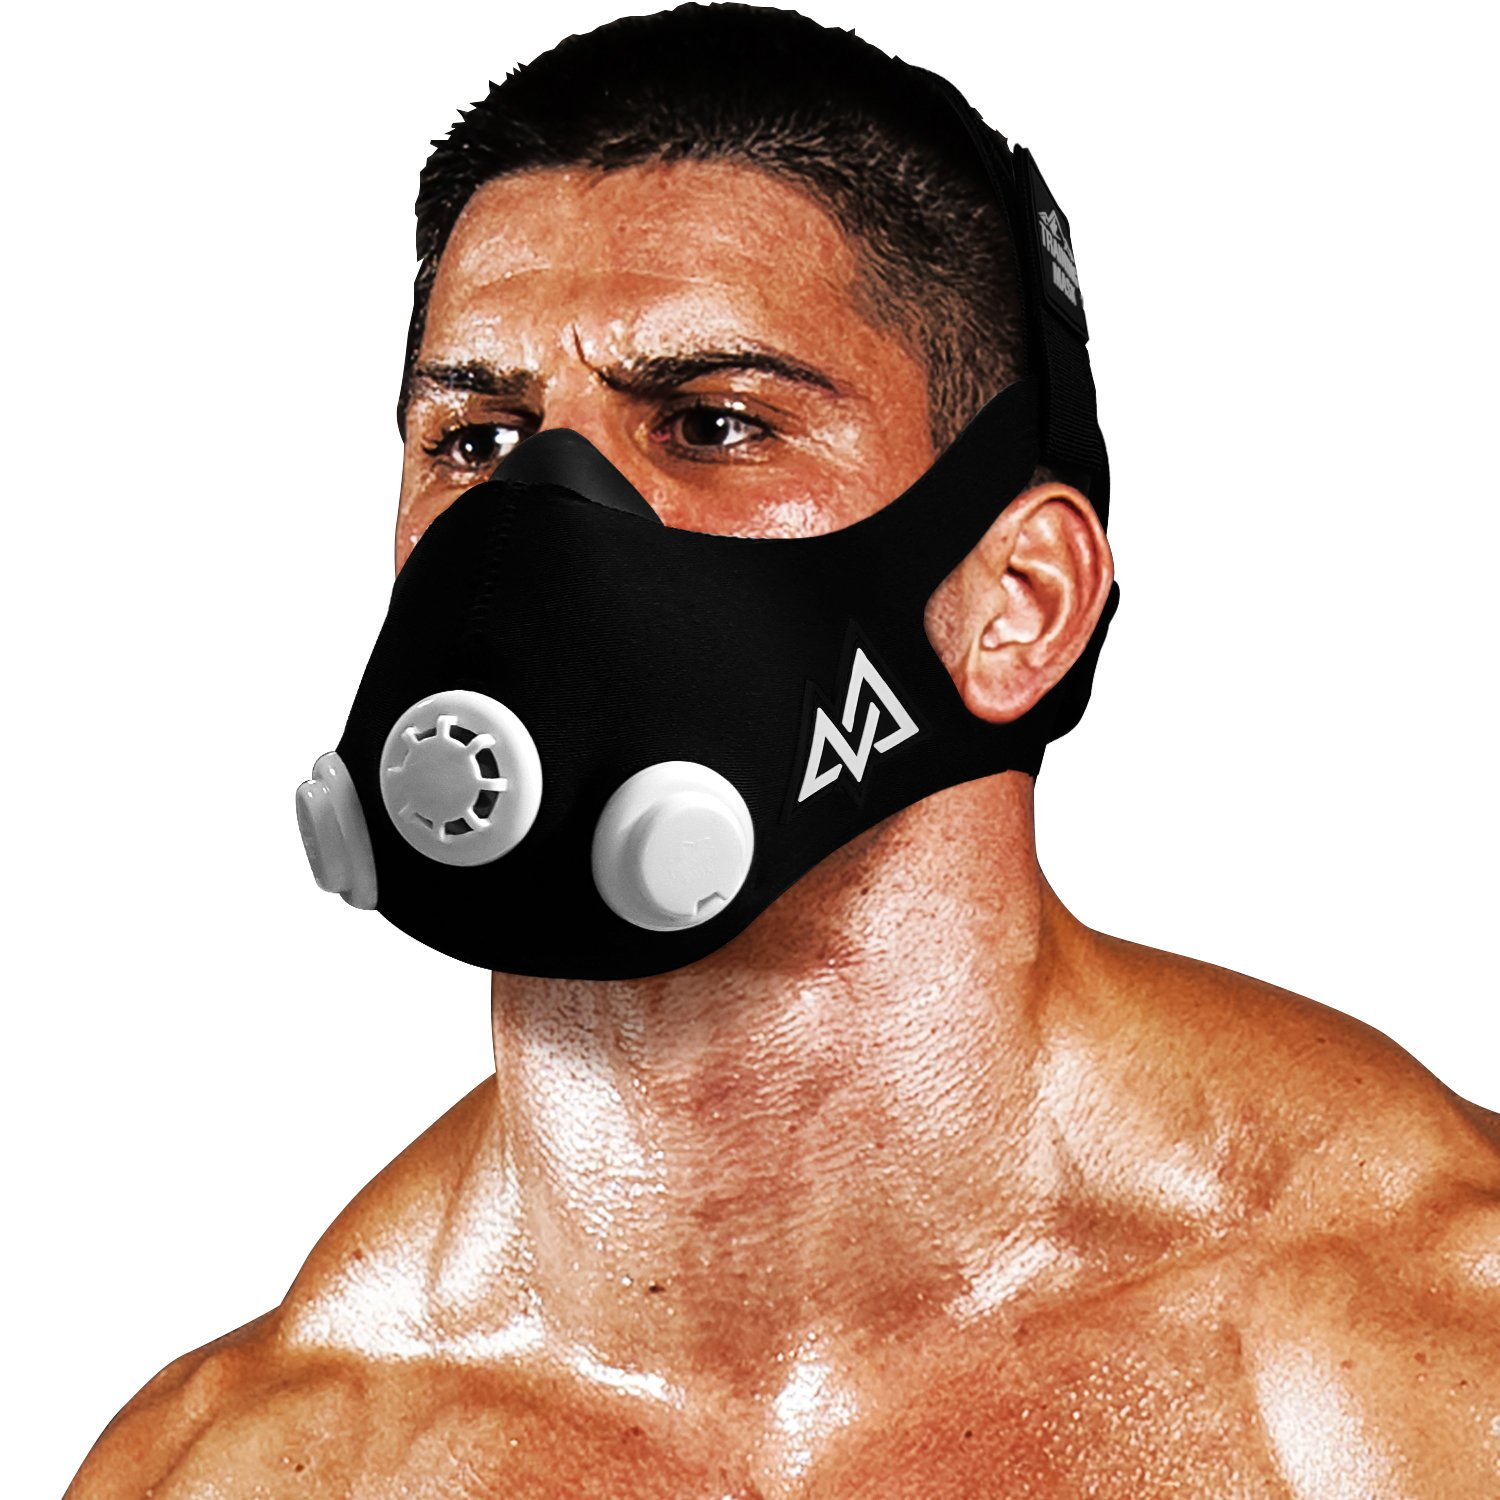 TRAININGMASK Training Mask 2.0 | Gym Workout Mask – for Cardio Stamina, Running, Endurance and Breathing Performance [Official Training Mask Used by The Pros]